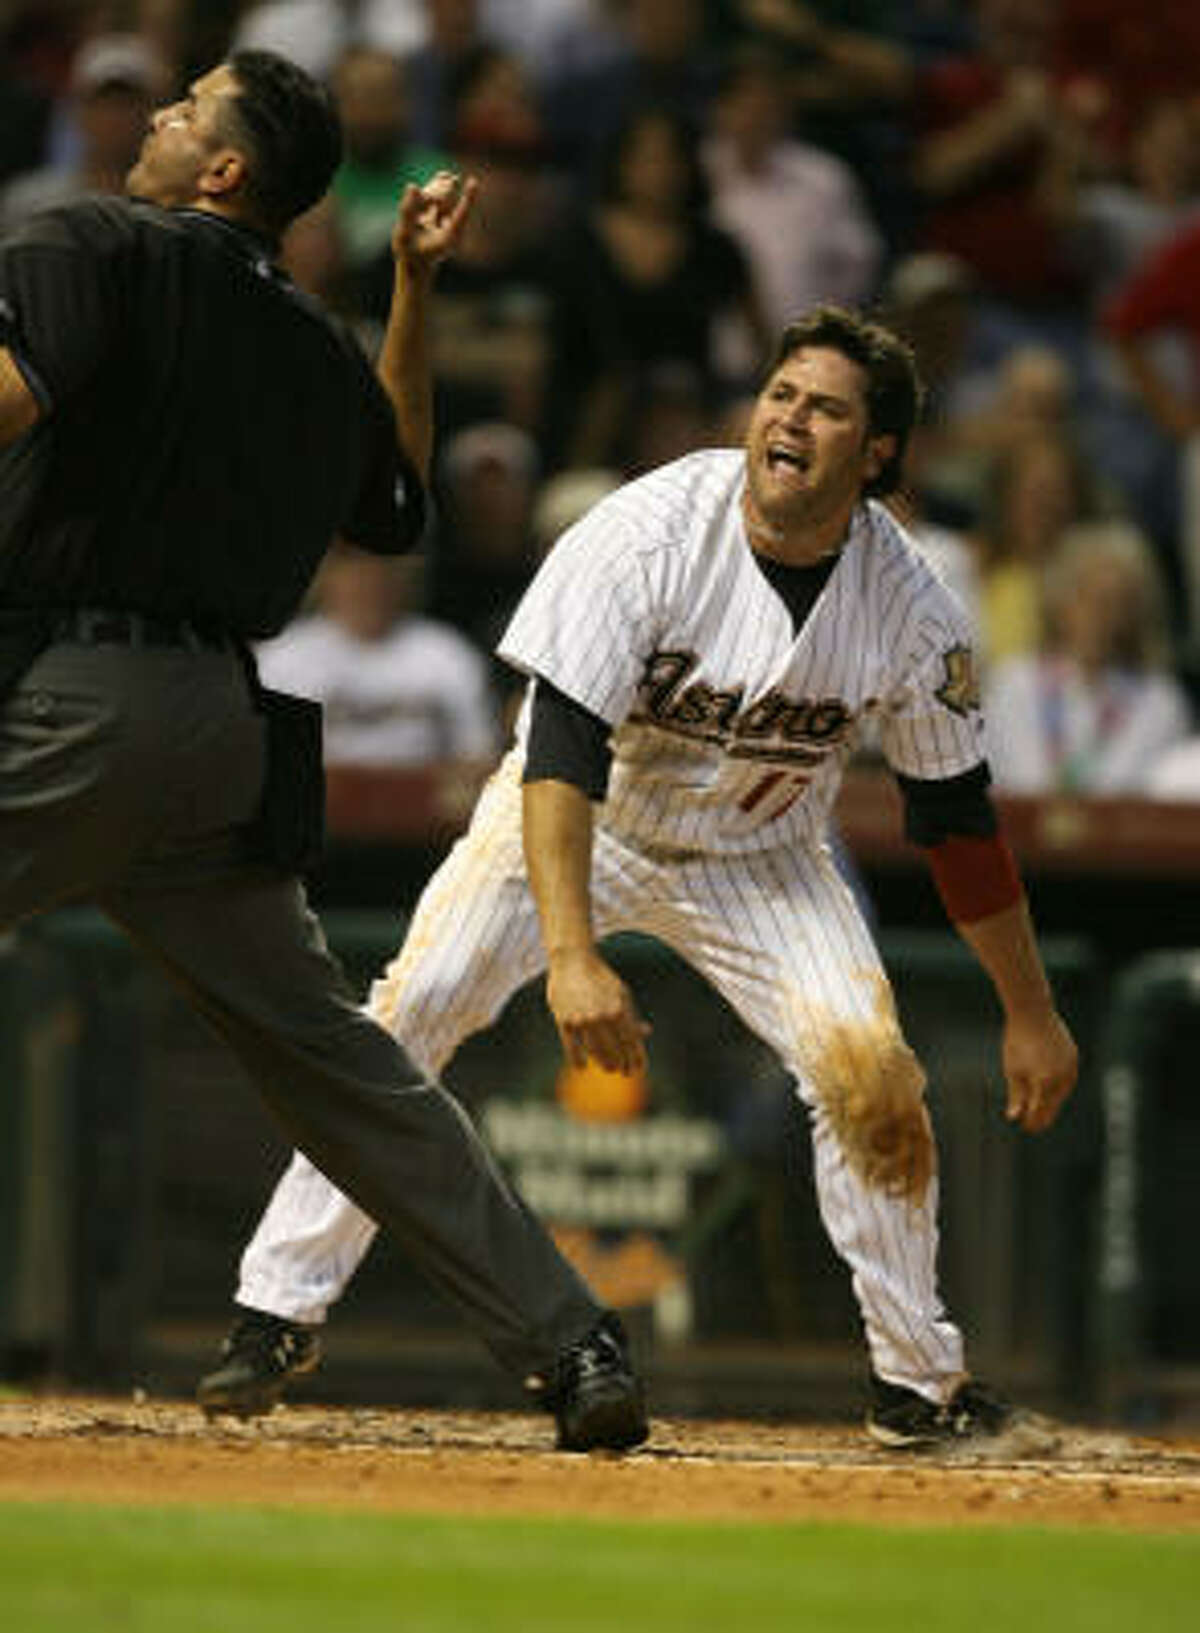 Lance Berkman is ejected by home plate umpire Delfin Colon for arguing a call at the plate.